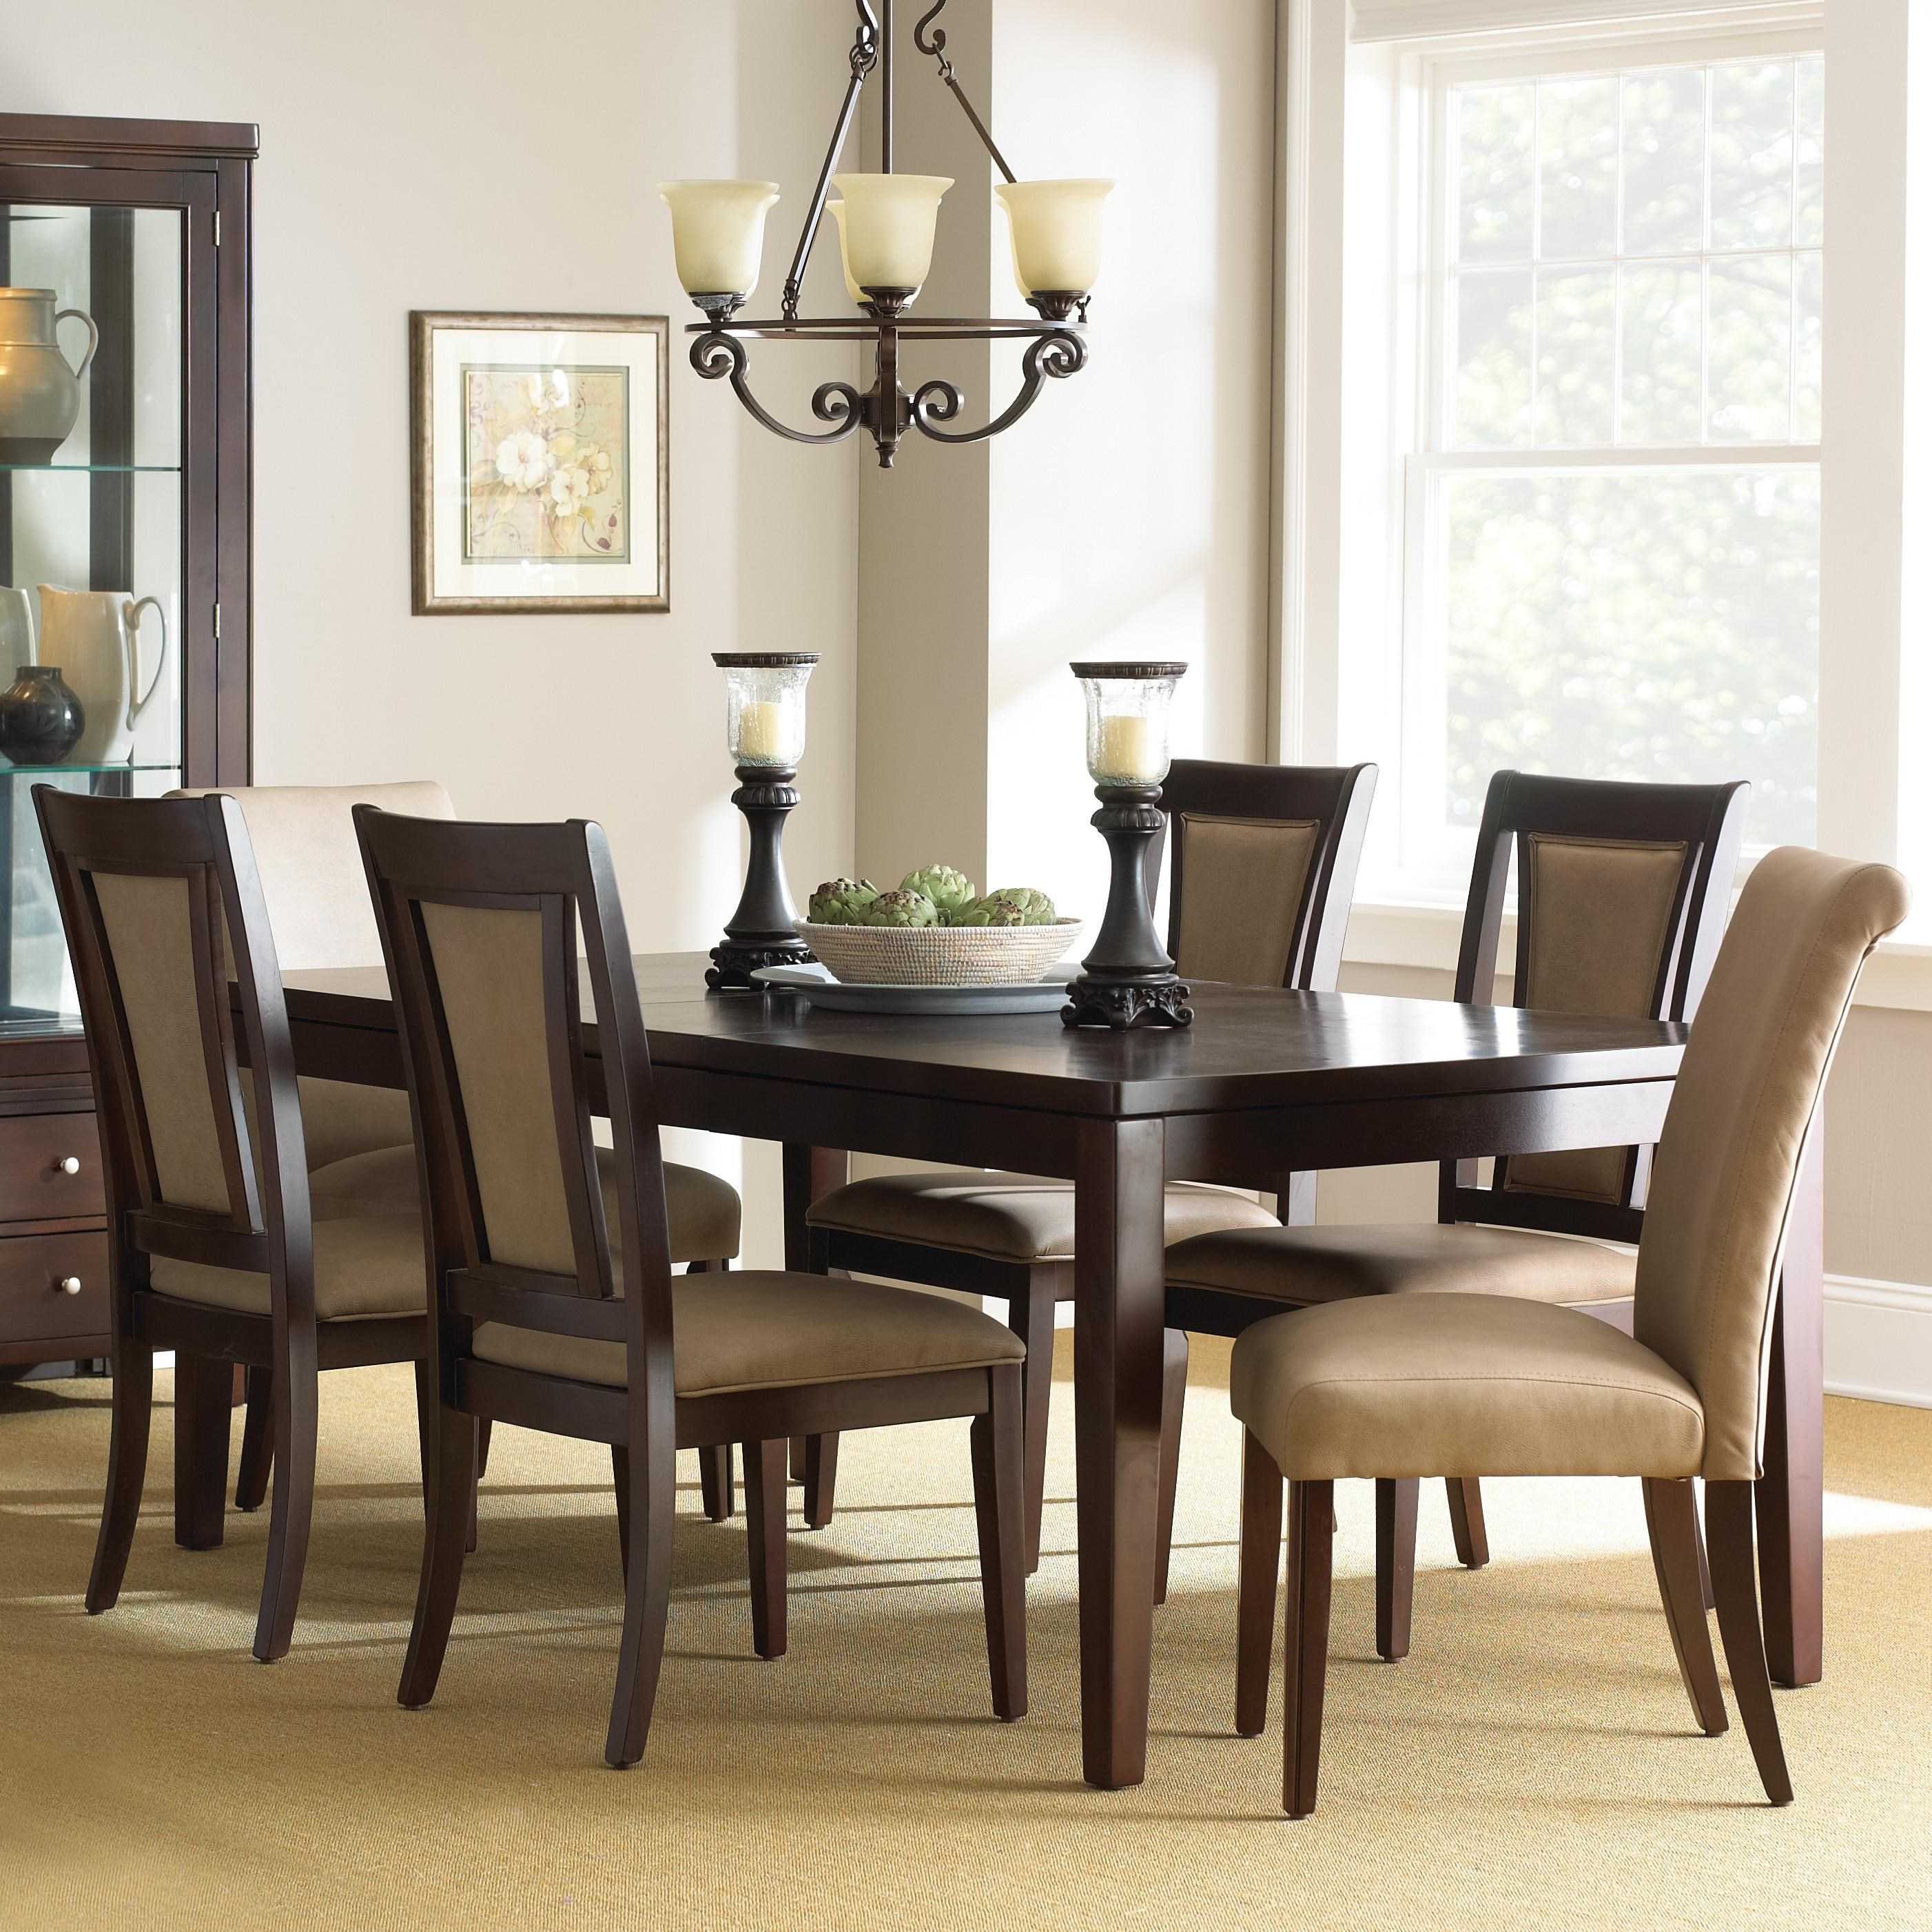 steve silver wilson 7piece dining set with parsons chairs - Steve Silver Furniture